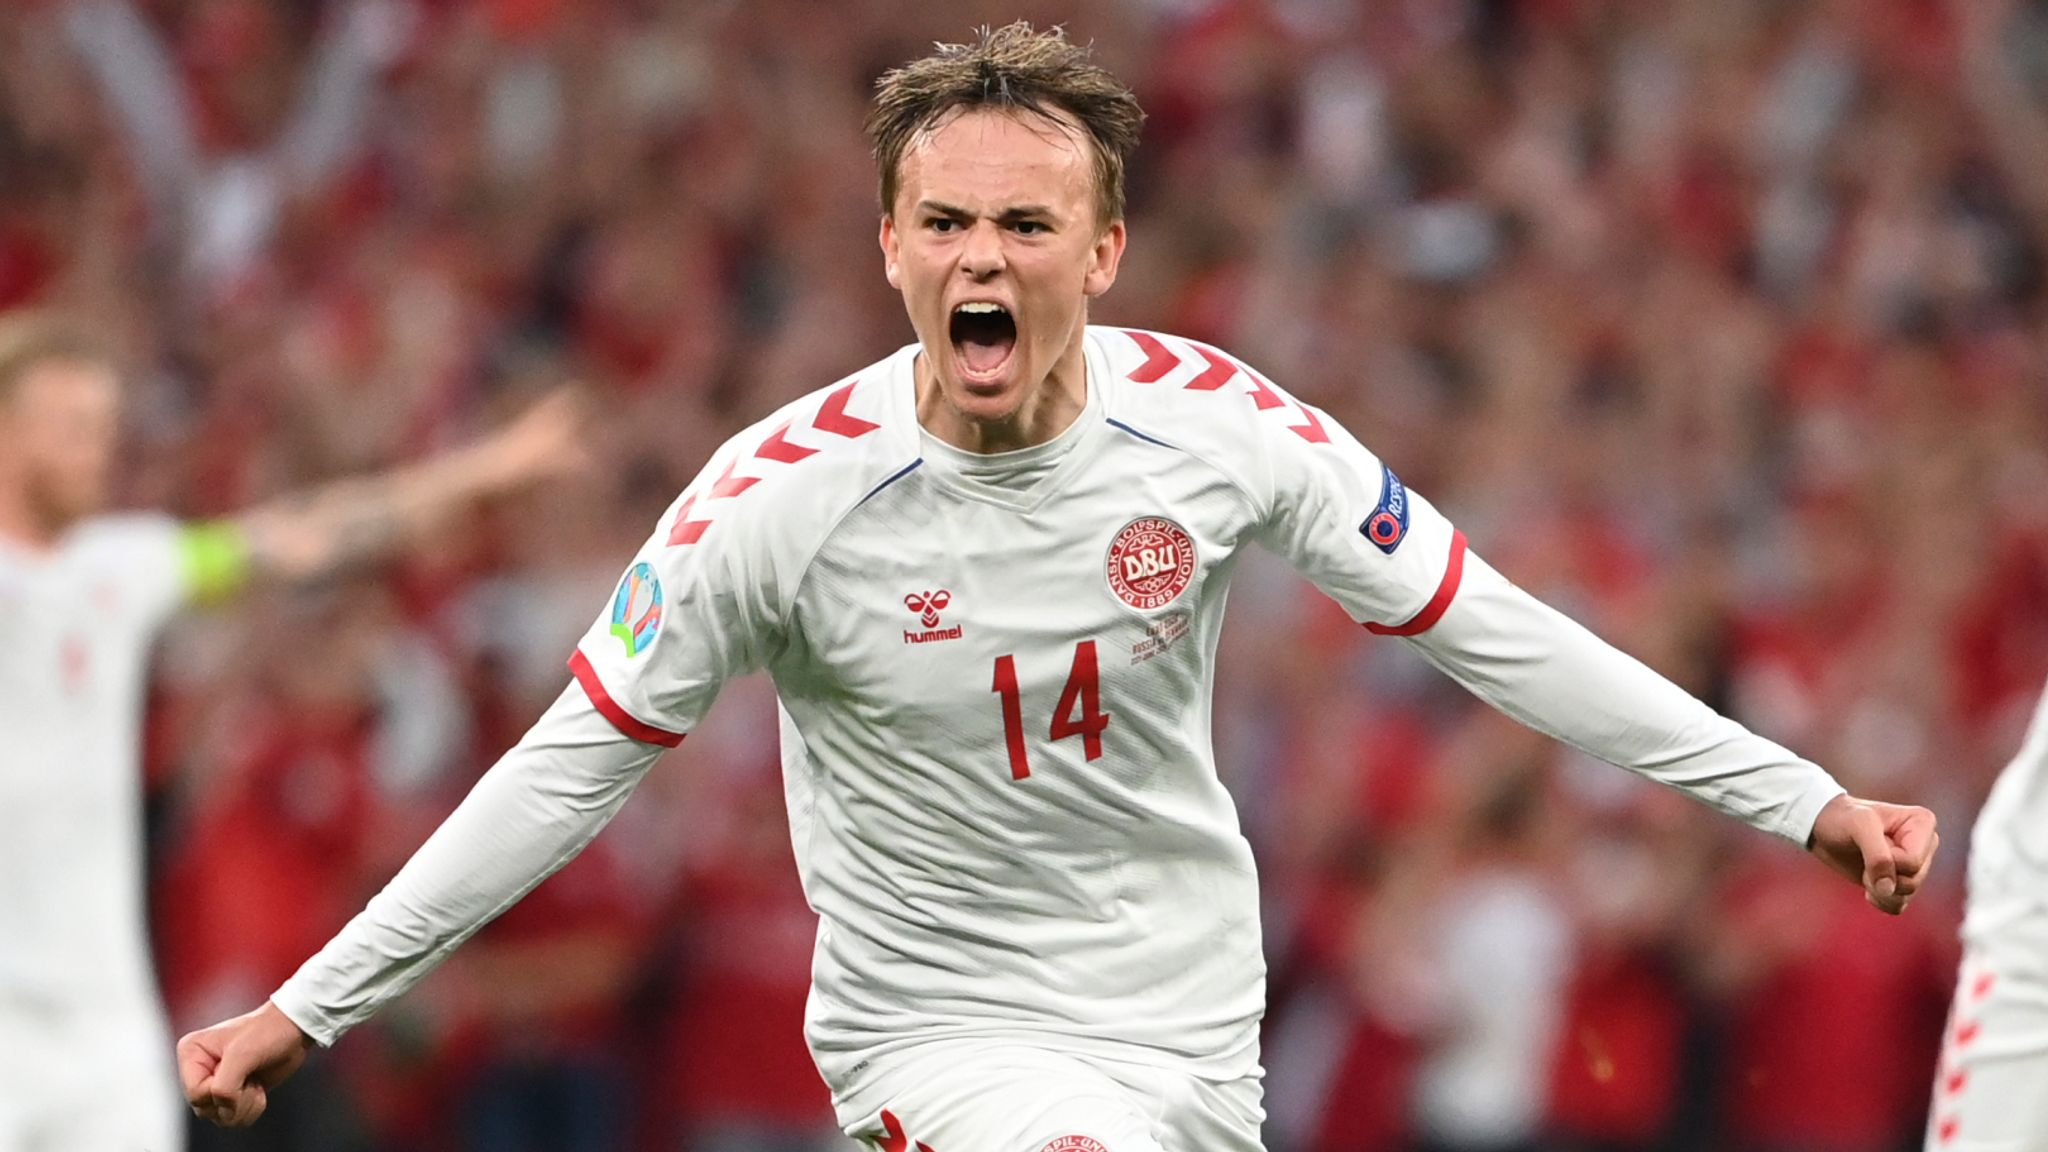 Russia 1-4 Denmark: Wonder goal from Mikkel Damsgaard and Belgium's win  over Finland help Danes into last 16 of Euro 2020   Football News   Sky  Sports